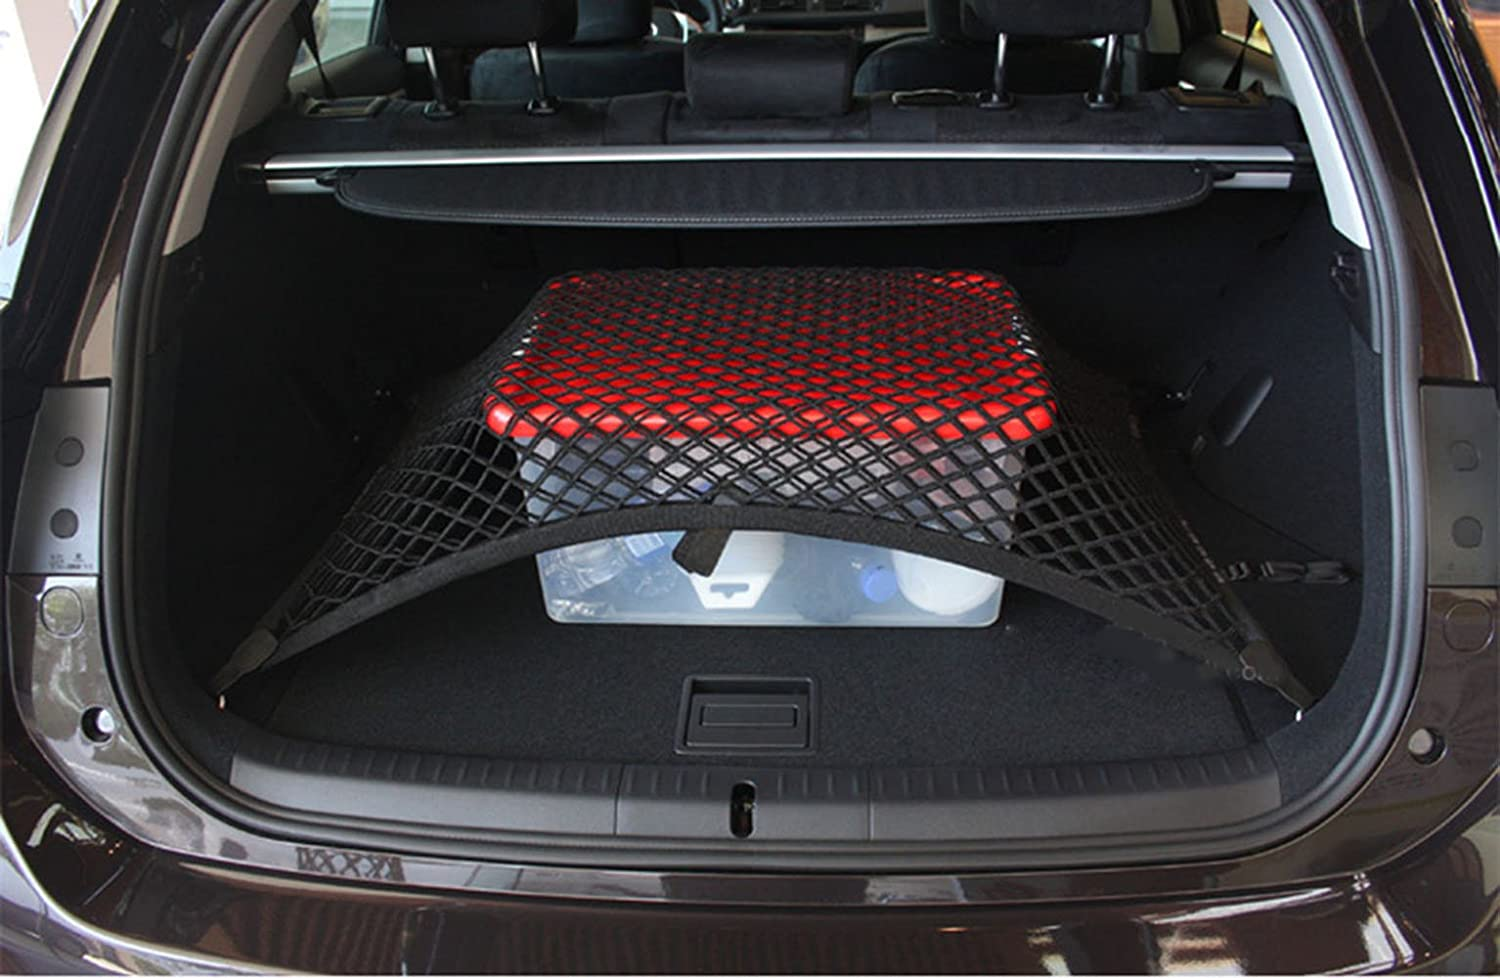 Pegasuss Custom fit High Elastic Floor Style Rear Trunk Storage Luggage Net for Mitsubishi Outlander 2013-2015